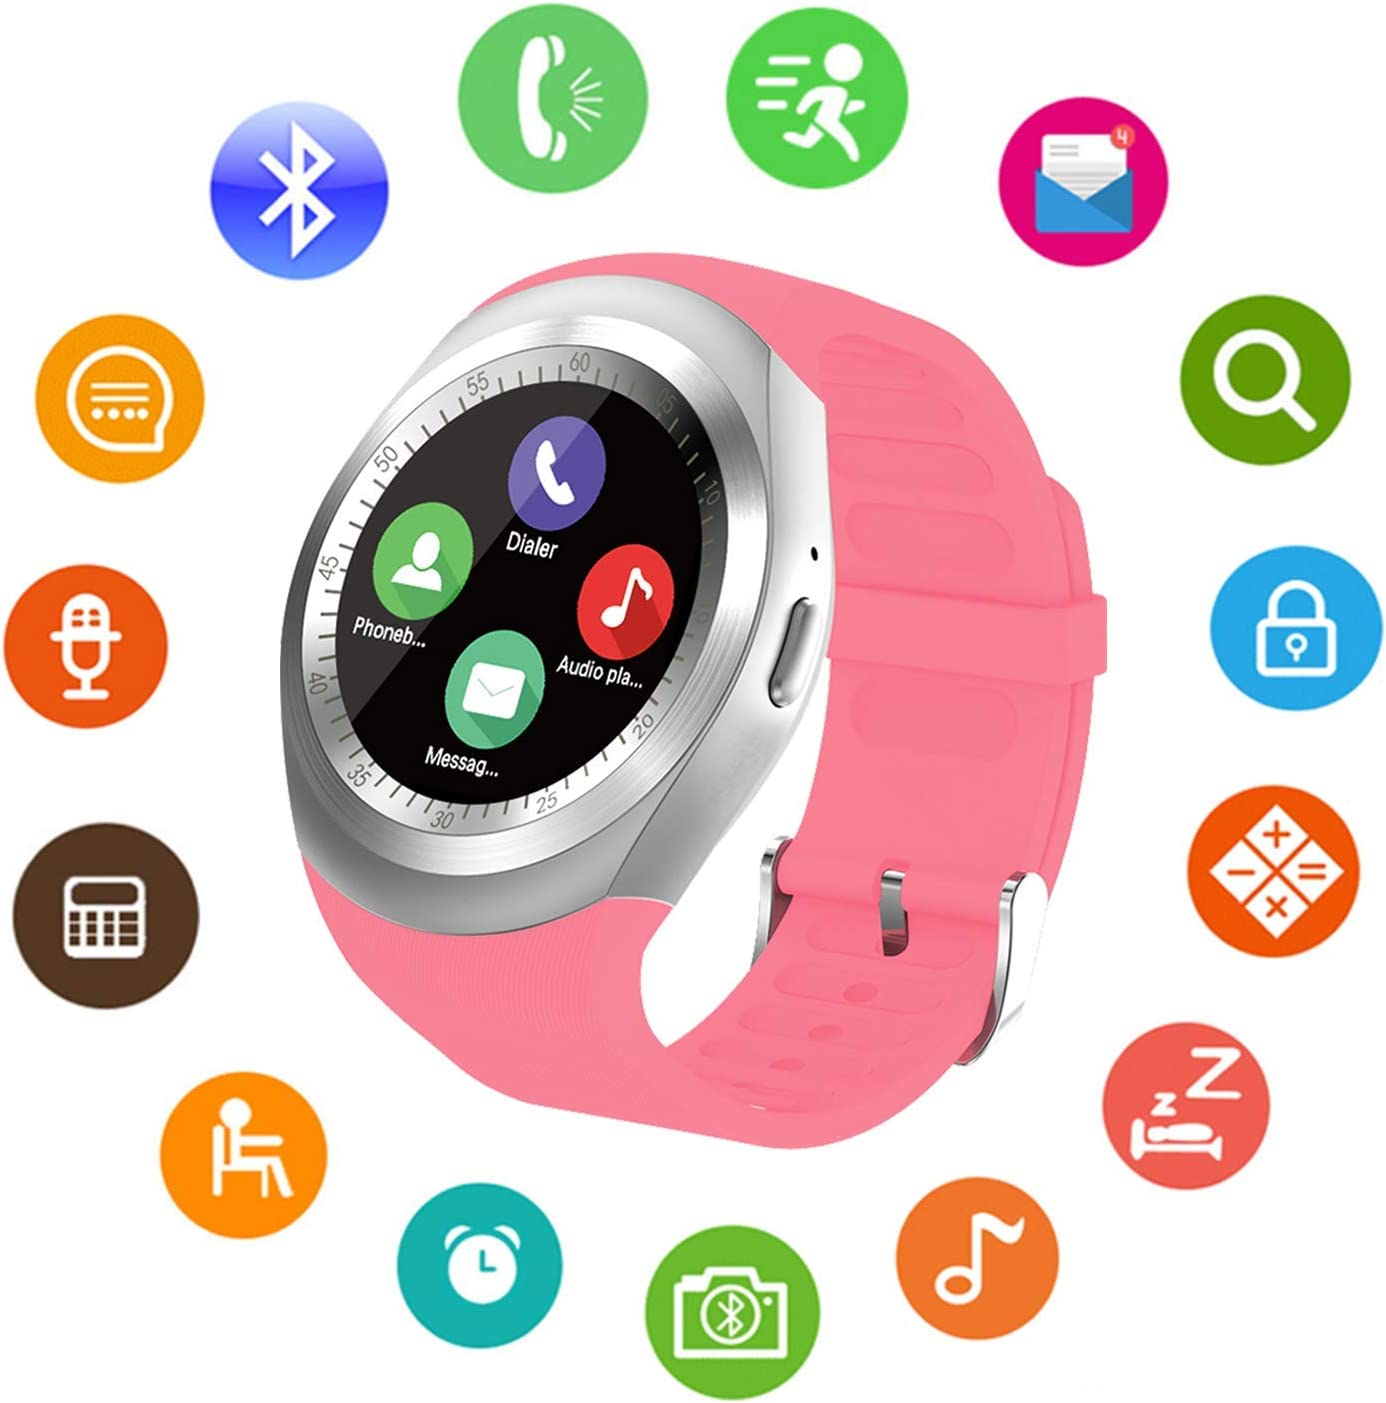 Bluetooth Smart Watch Unlocked Cell Phone Watch with SIM Card Slot Smartwatch for Samsung LG HTC Sony Google Huawei Xiaomi Android Smart Phones (Pink)